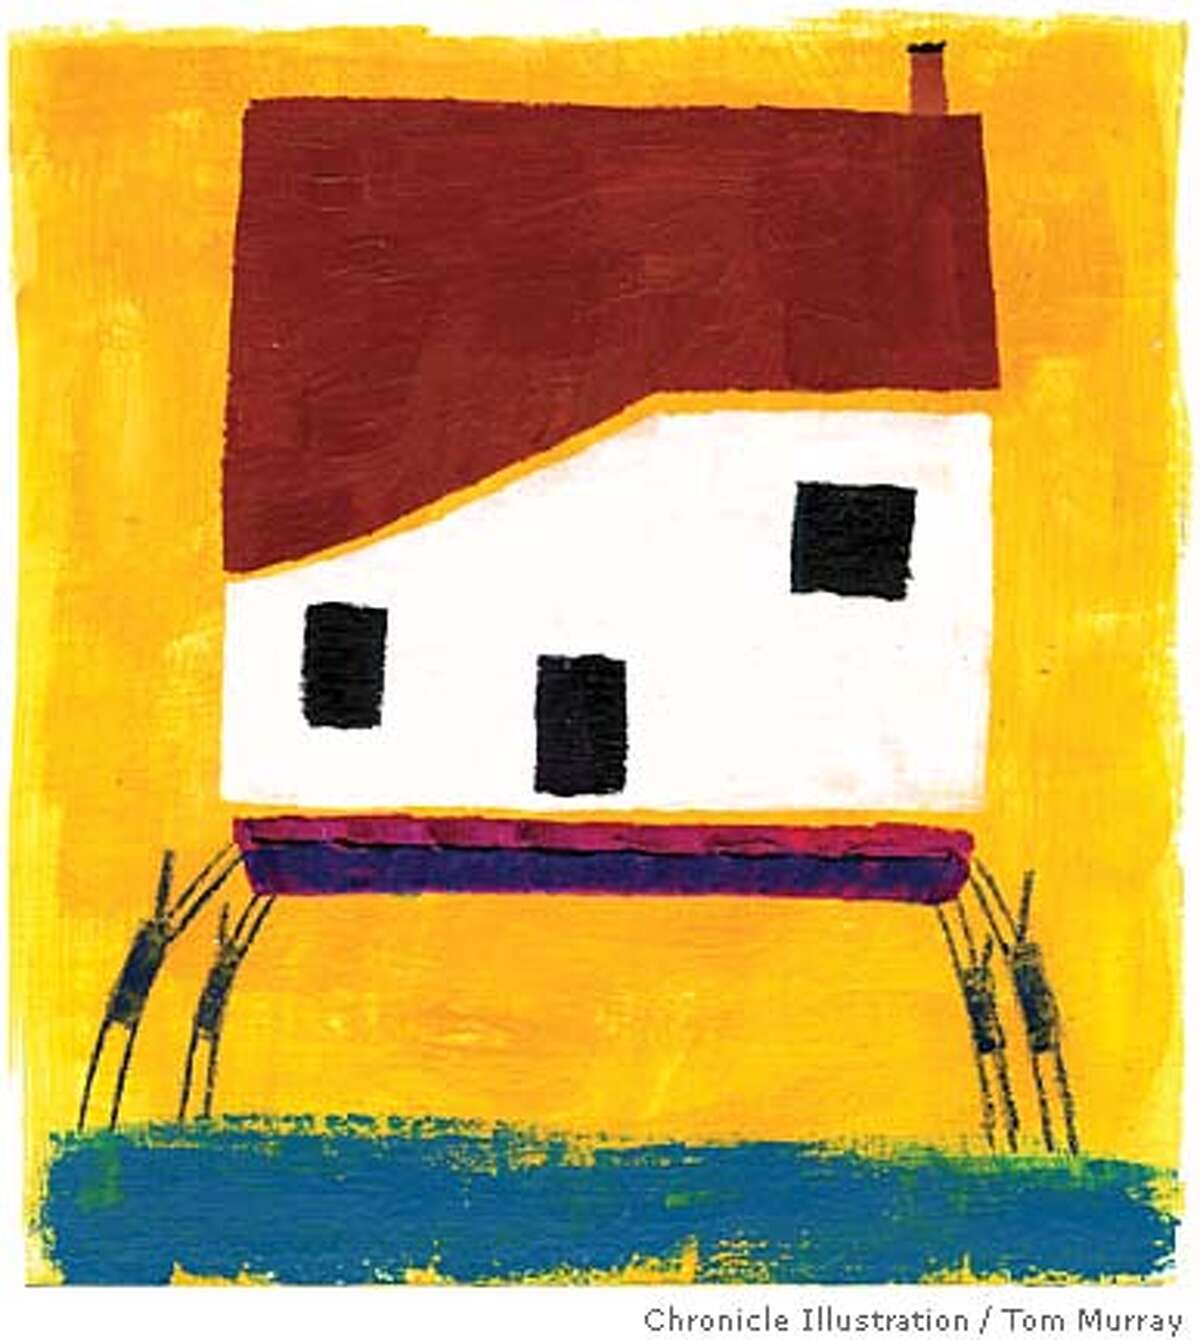 Cohousing. Chronicle illustration by Tom Murray